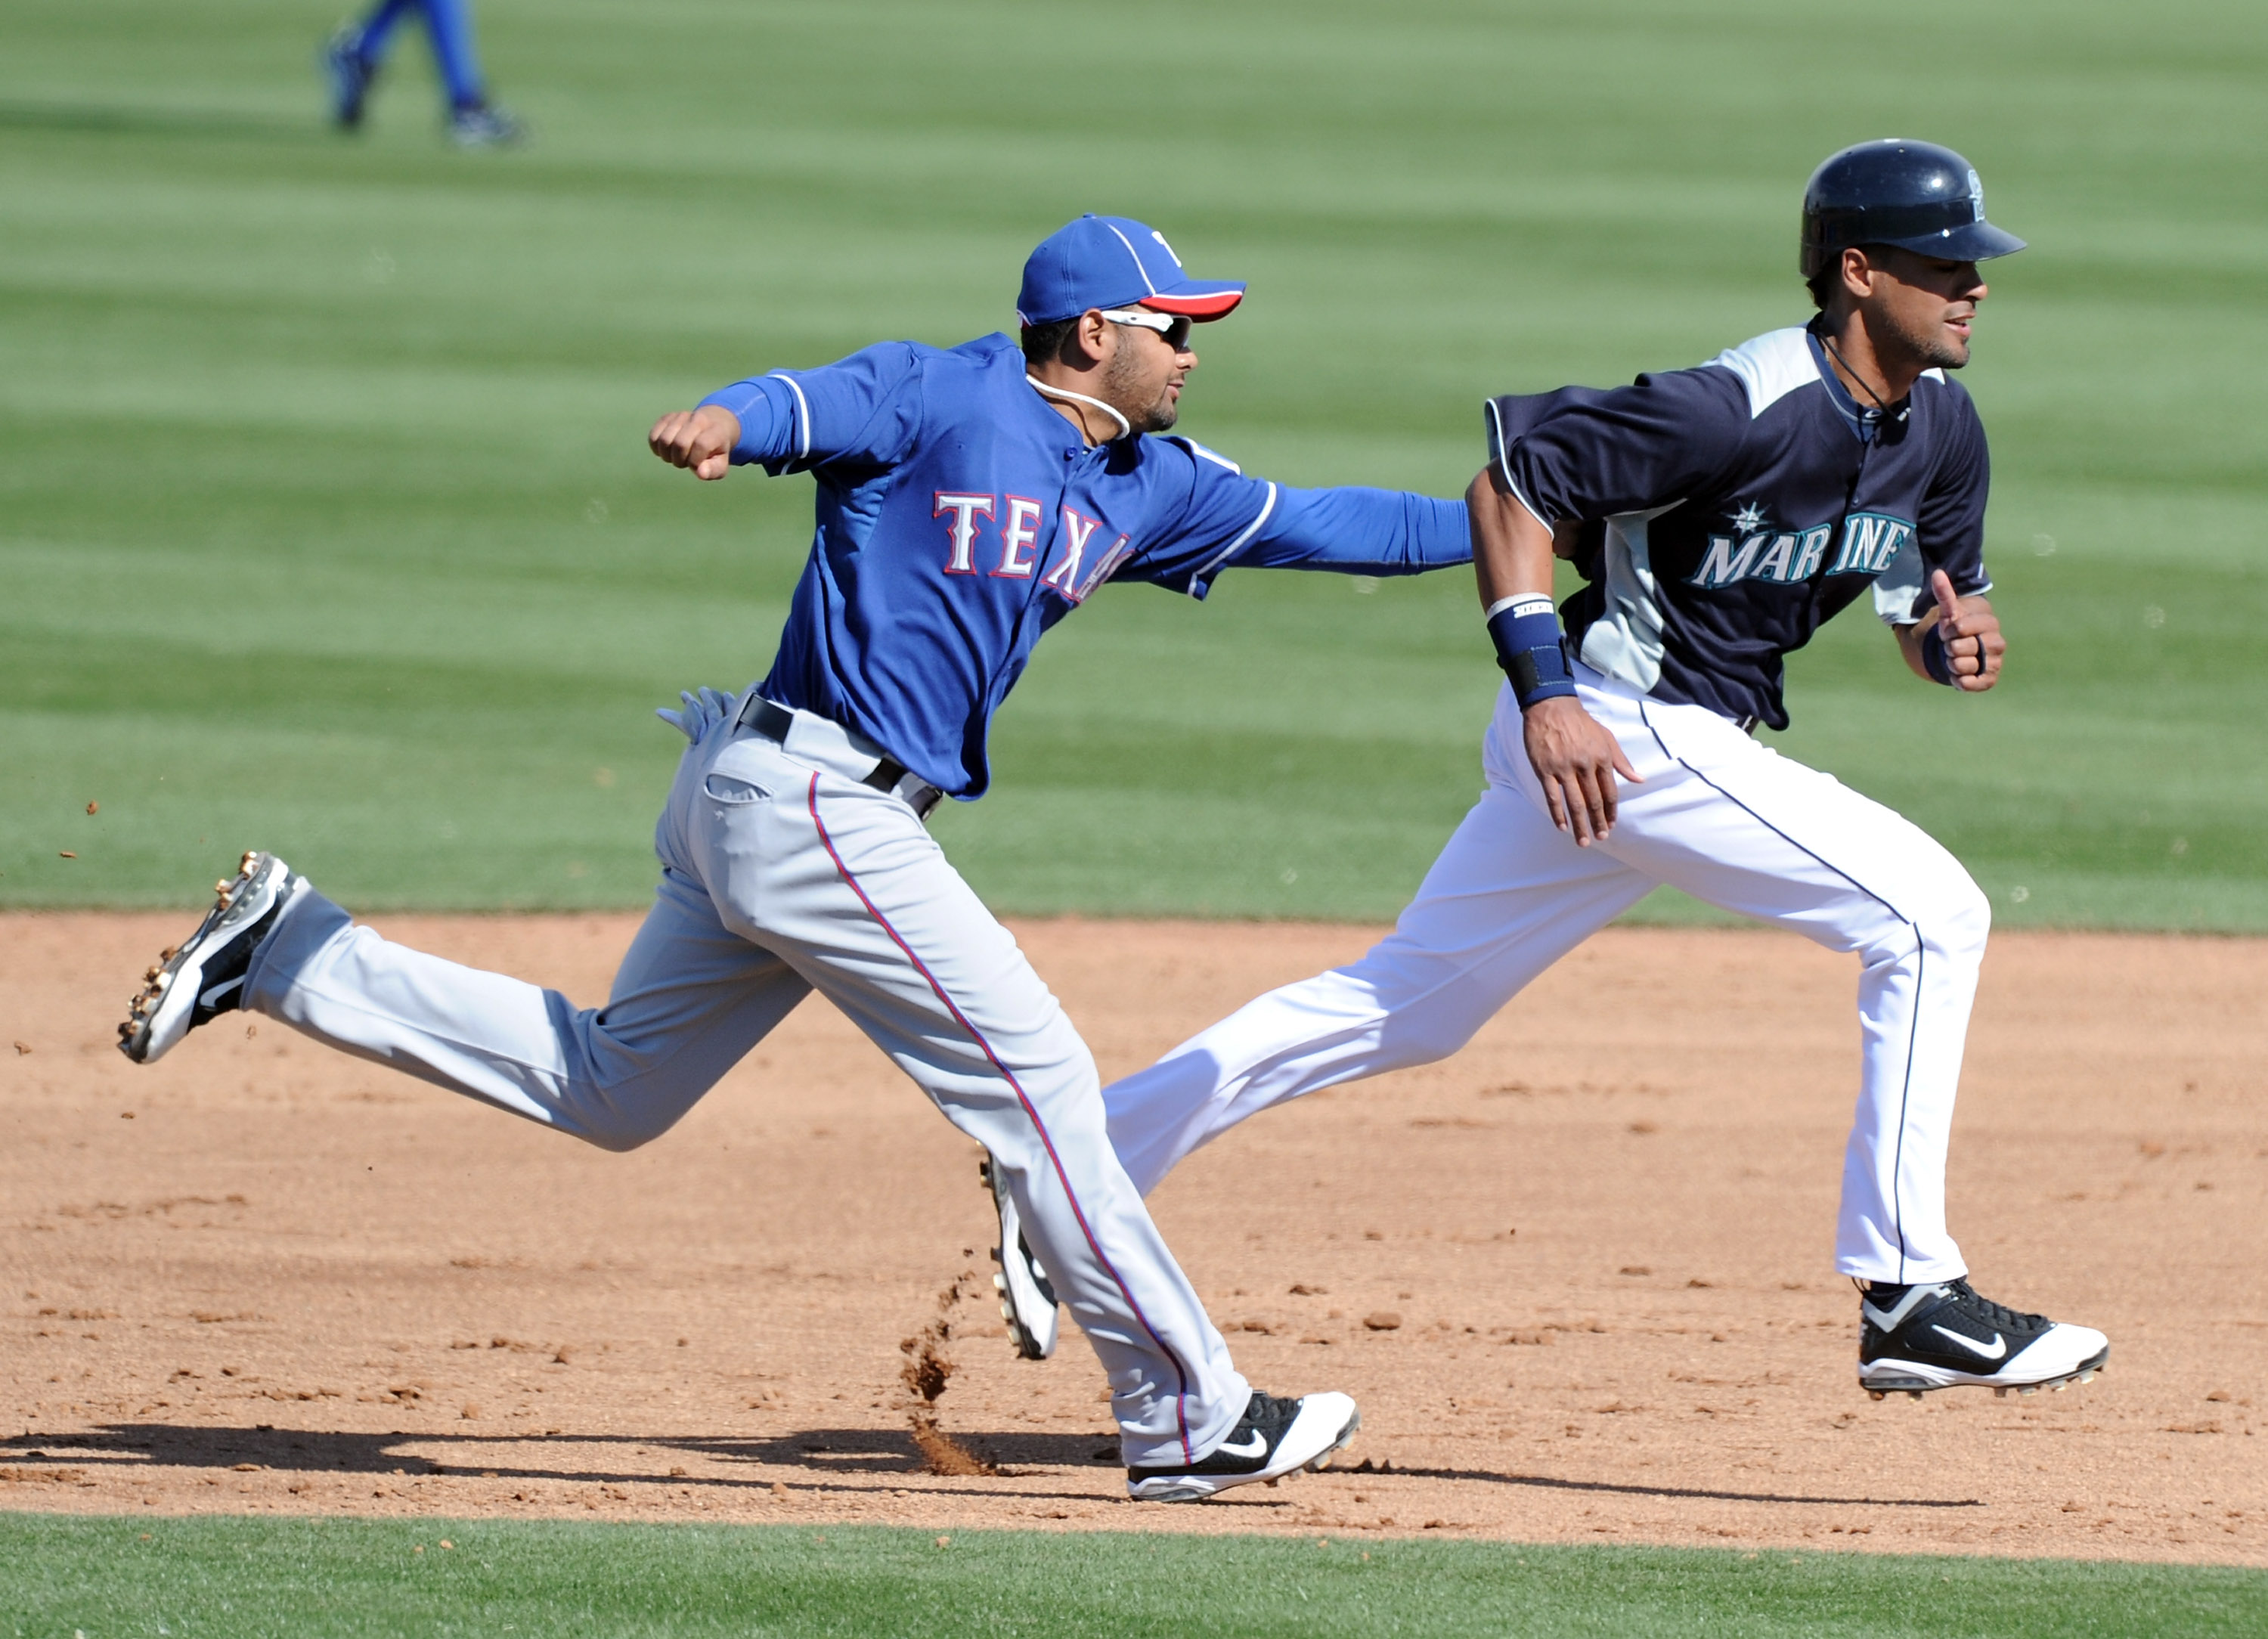 PEORIA, AZ - MARCH 01:  Andres Blanco #3 of the Texas Rangers tags Franklin Gutierrez #21 of the Seattle Mariners for an out during an attempted steal in the sixth inning during spring training at Peoria Stadium on March 1, 2011 in Peoria, Arizona.  (Phot